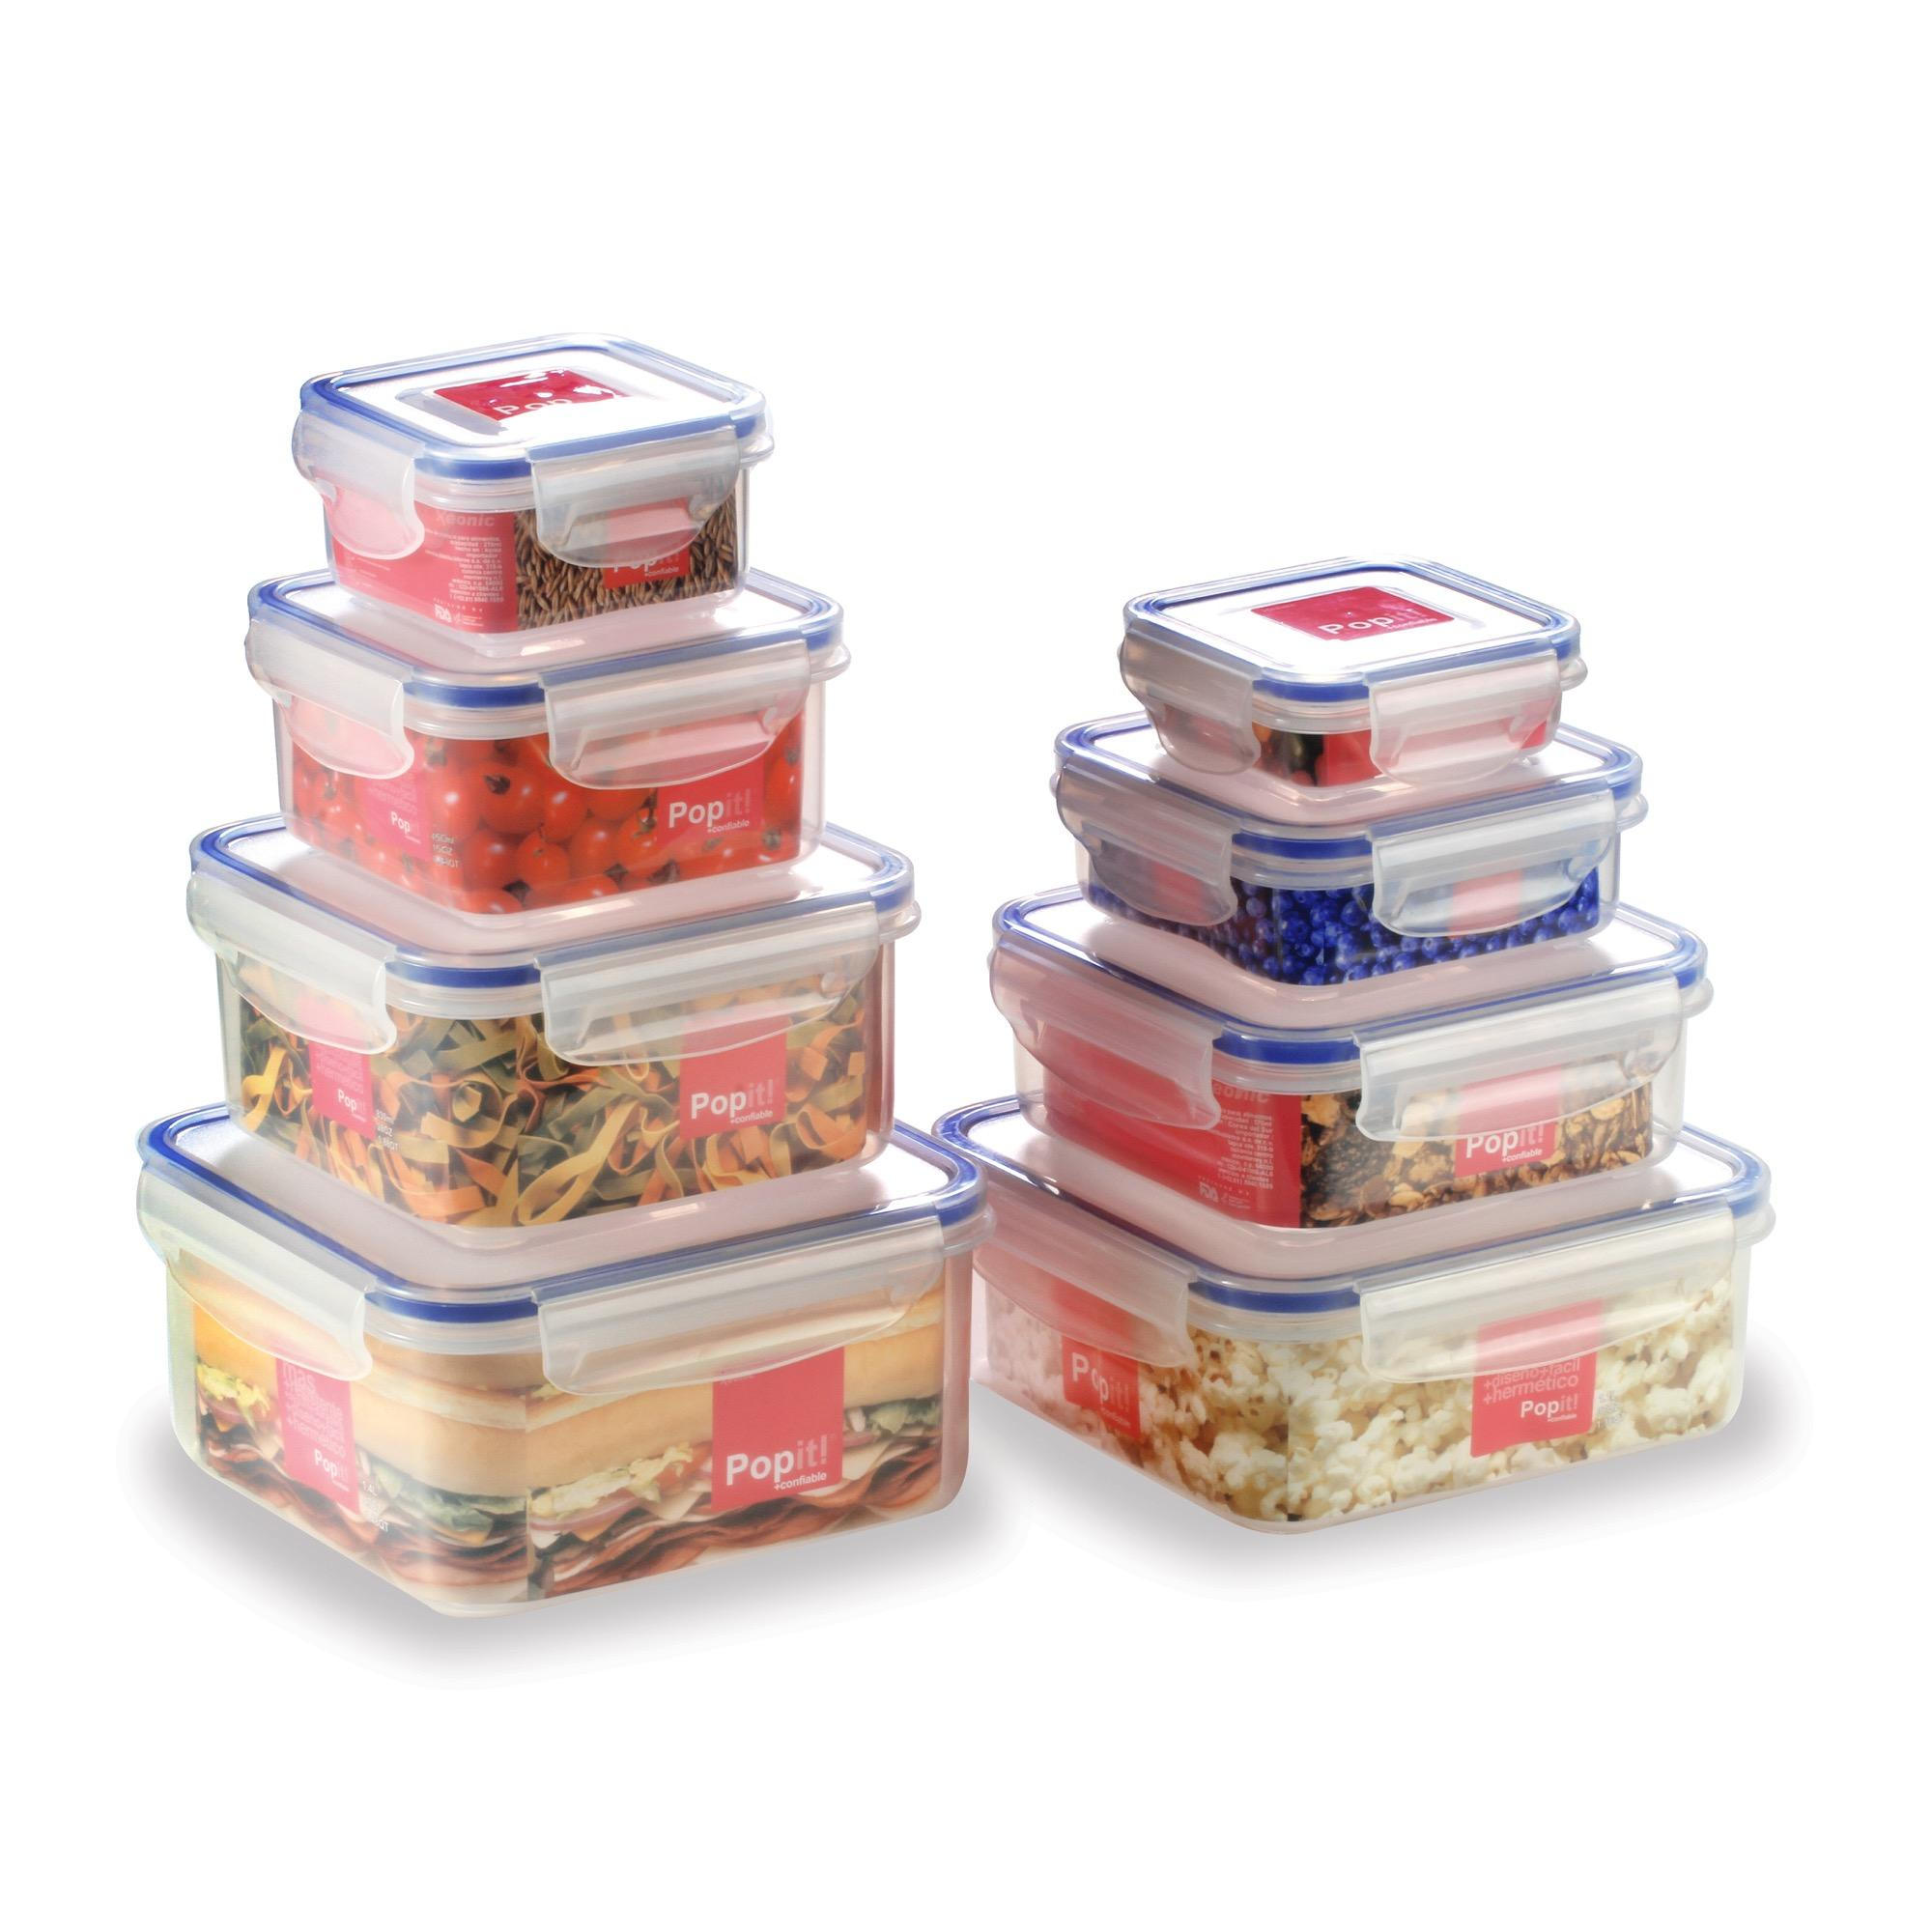 Little Big Box - By Popit! (8 Plastic Container Set / Food